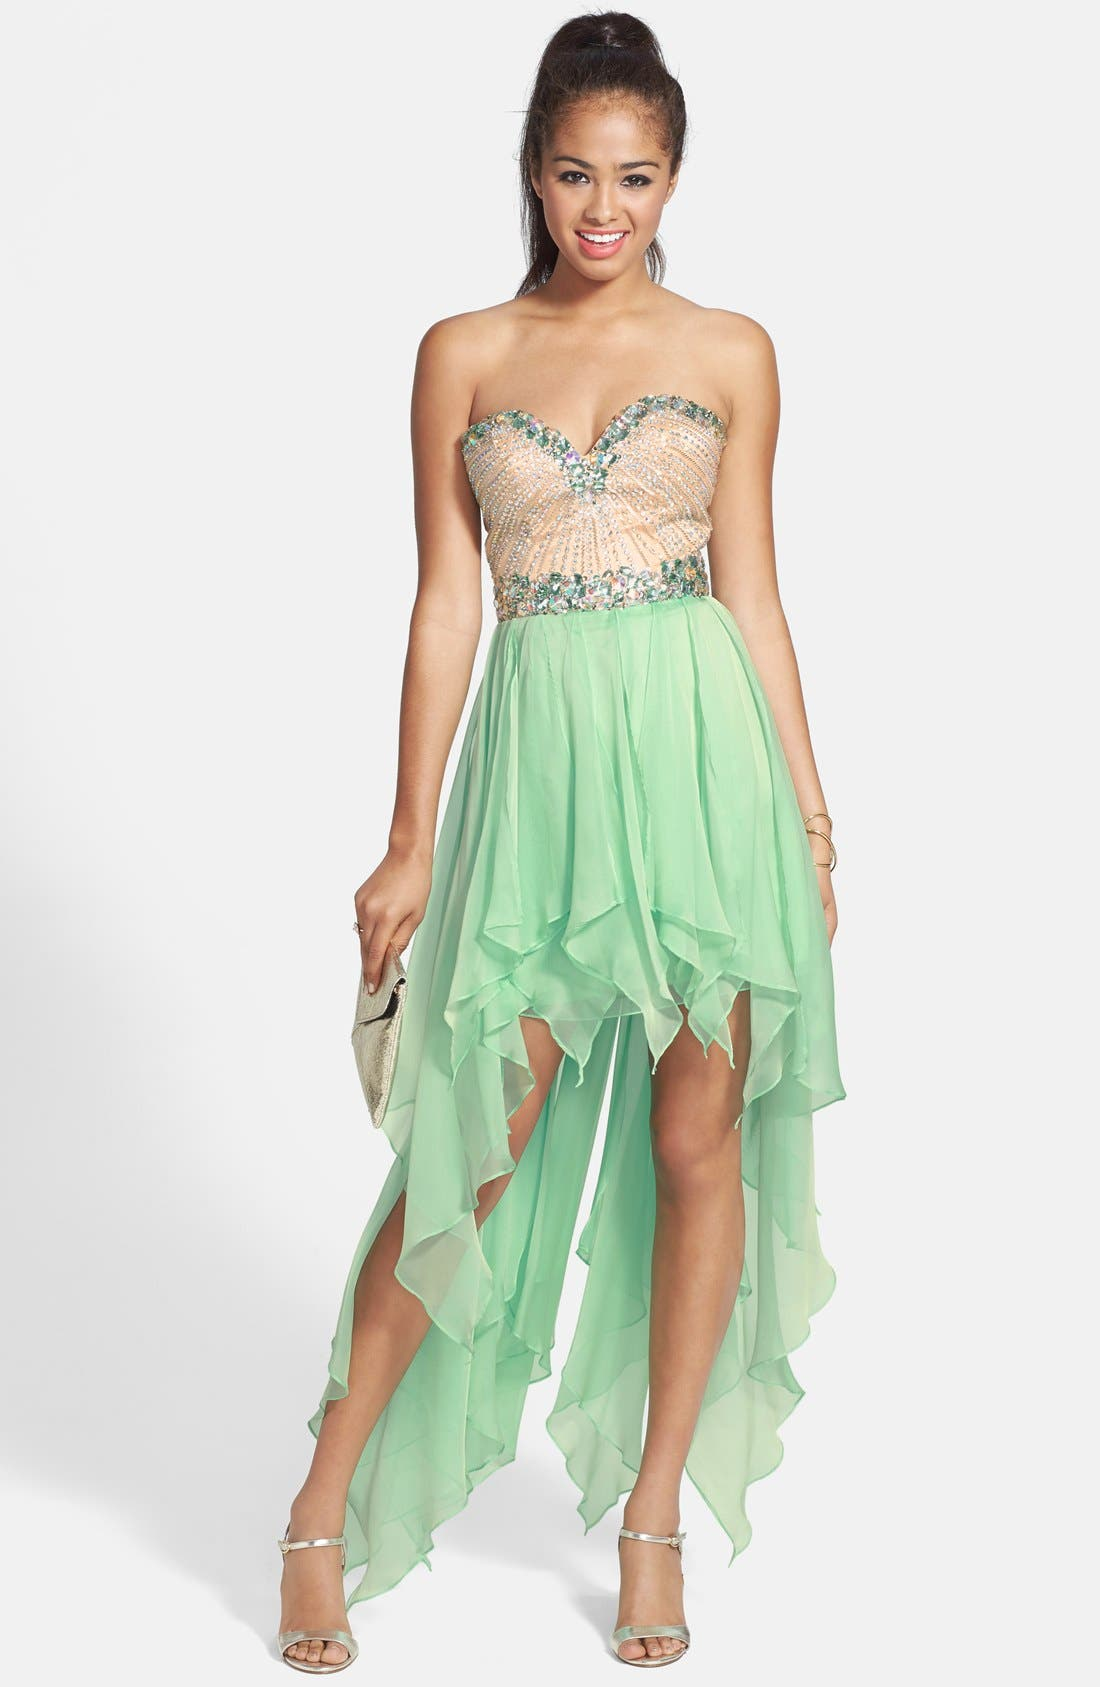 SHERRI HILL, Strapless High/Low Gown, Main thumbnail 1, color, 330